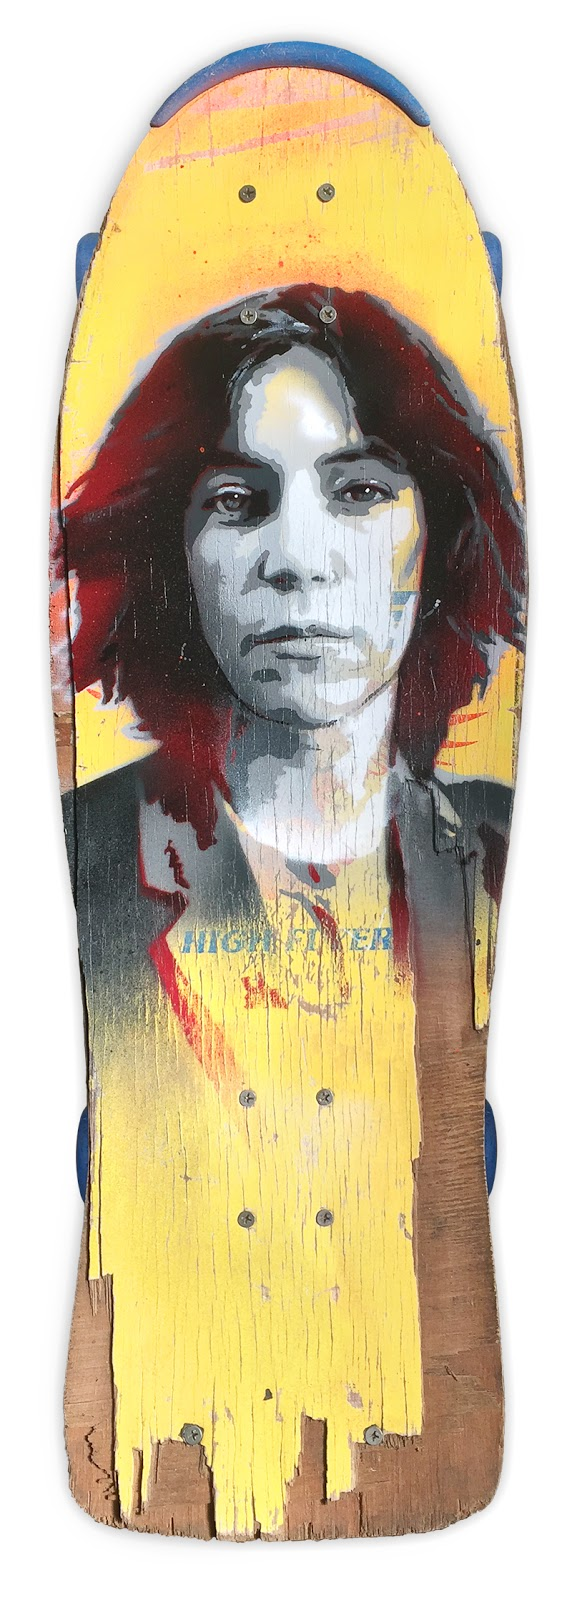 A skatedeck artwork of Patti Smith created by artist James Straffon